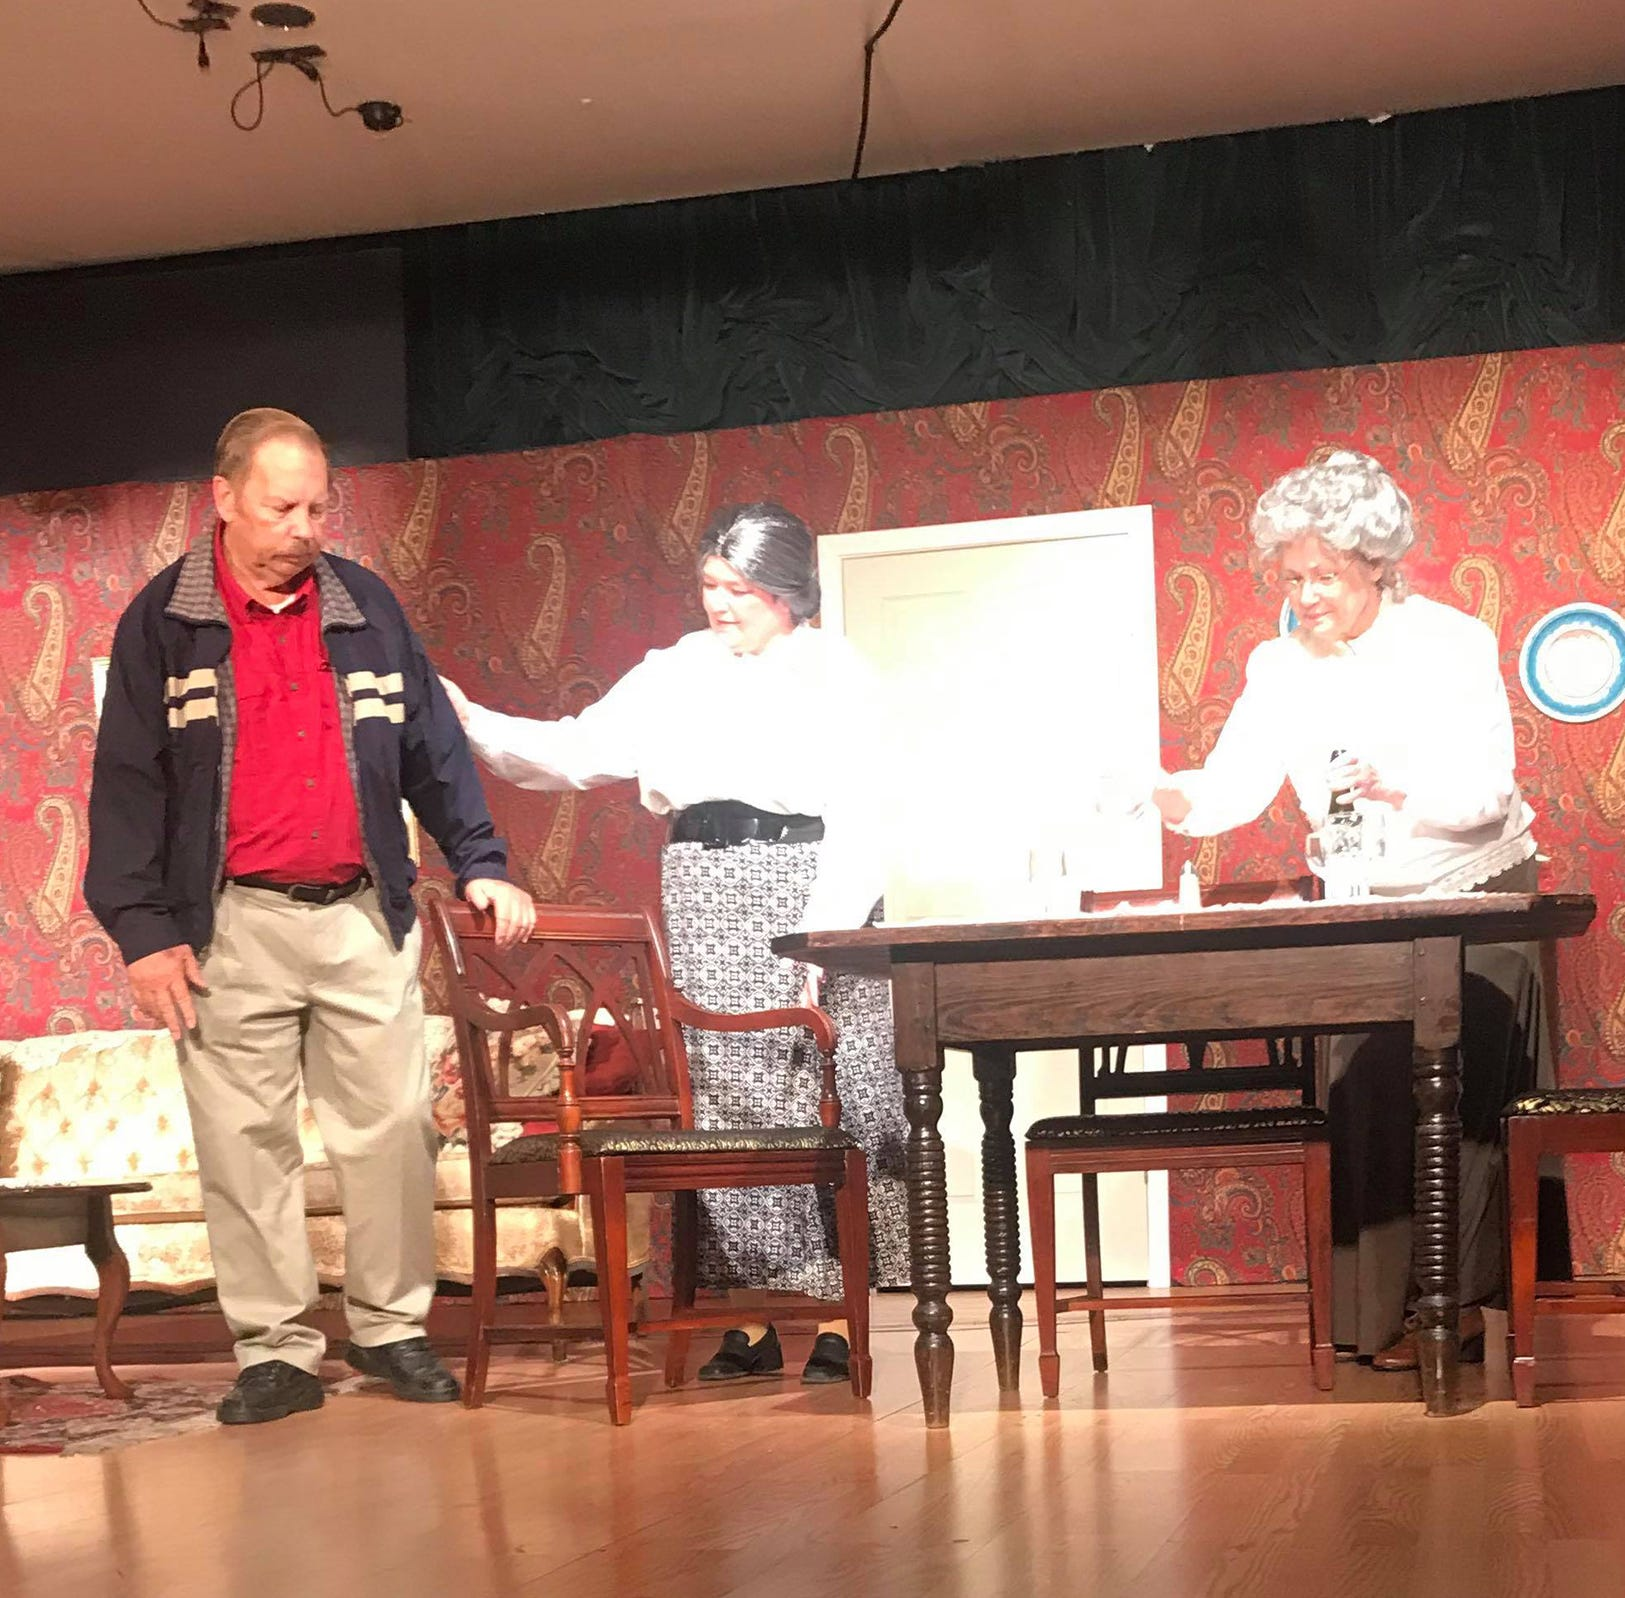 'Arsenic and Old Lace': You'll laugh so much, you might drop dead too